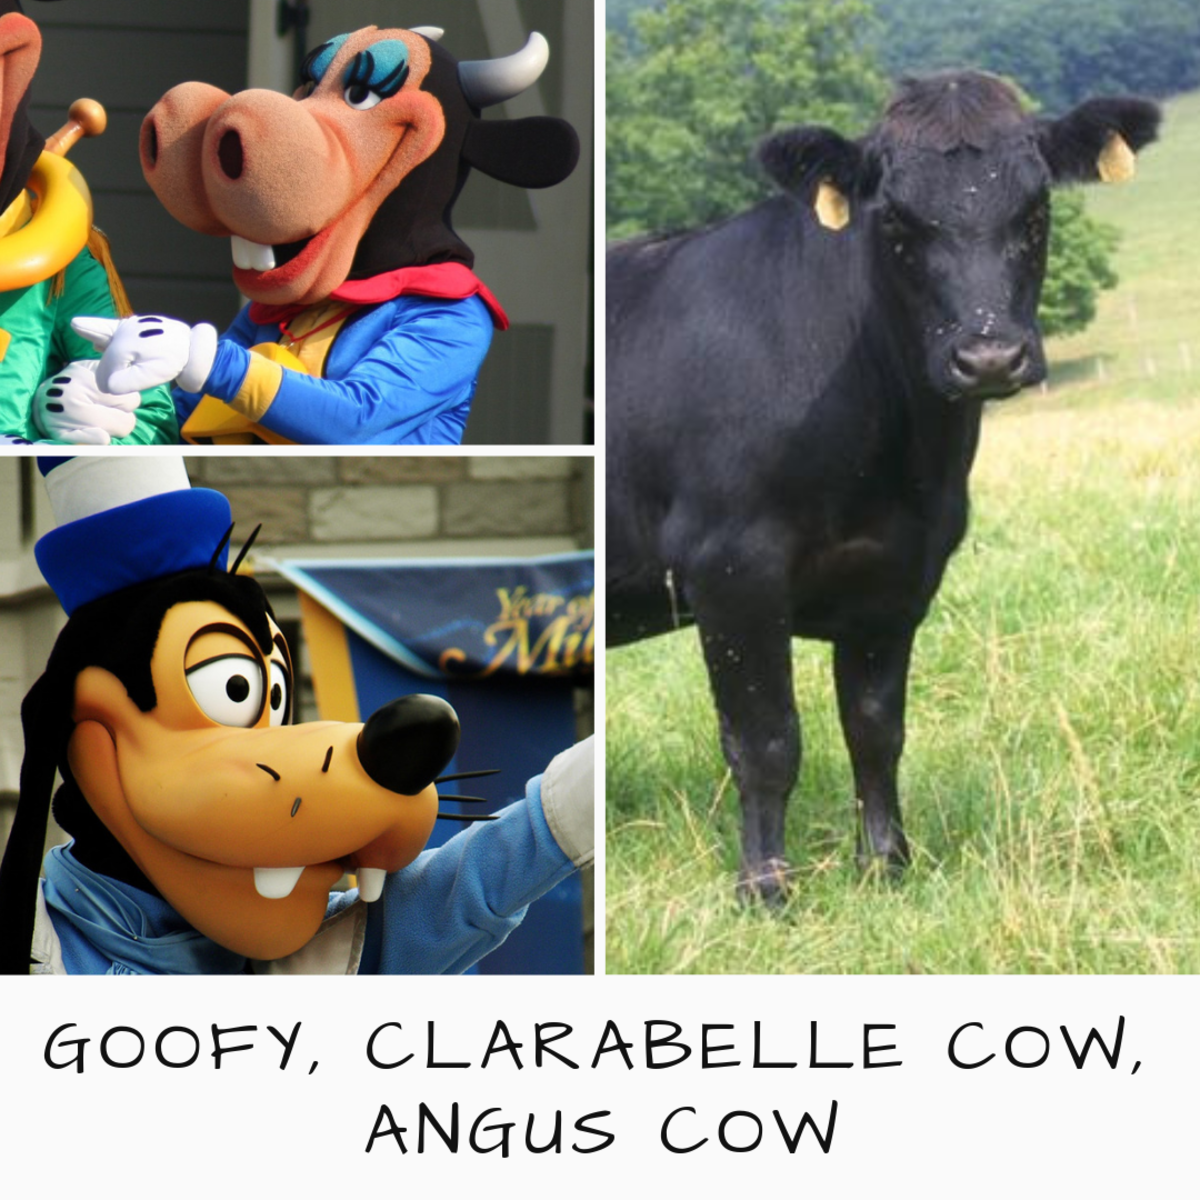 Goofy and Clarabelle Cow compared to the Angus breed. What species is Goofy? Decide for yourself.